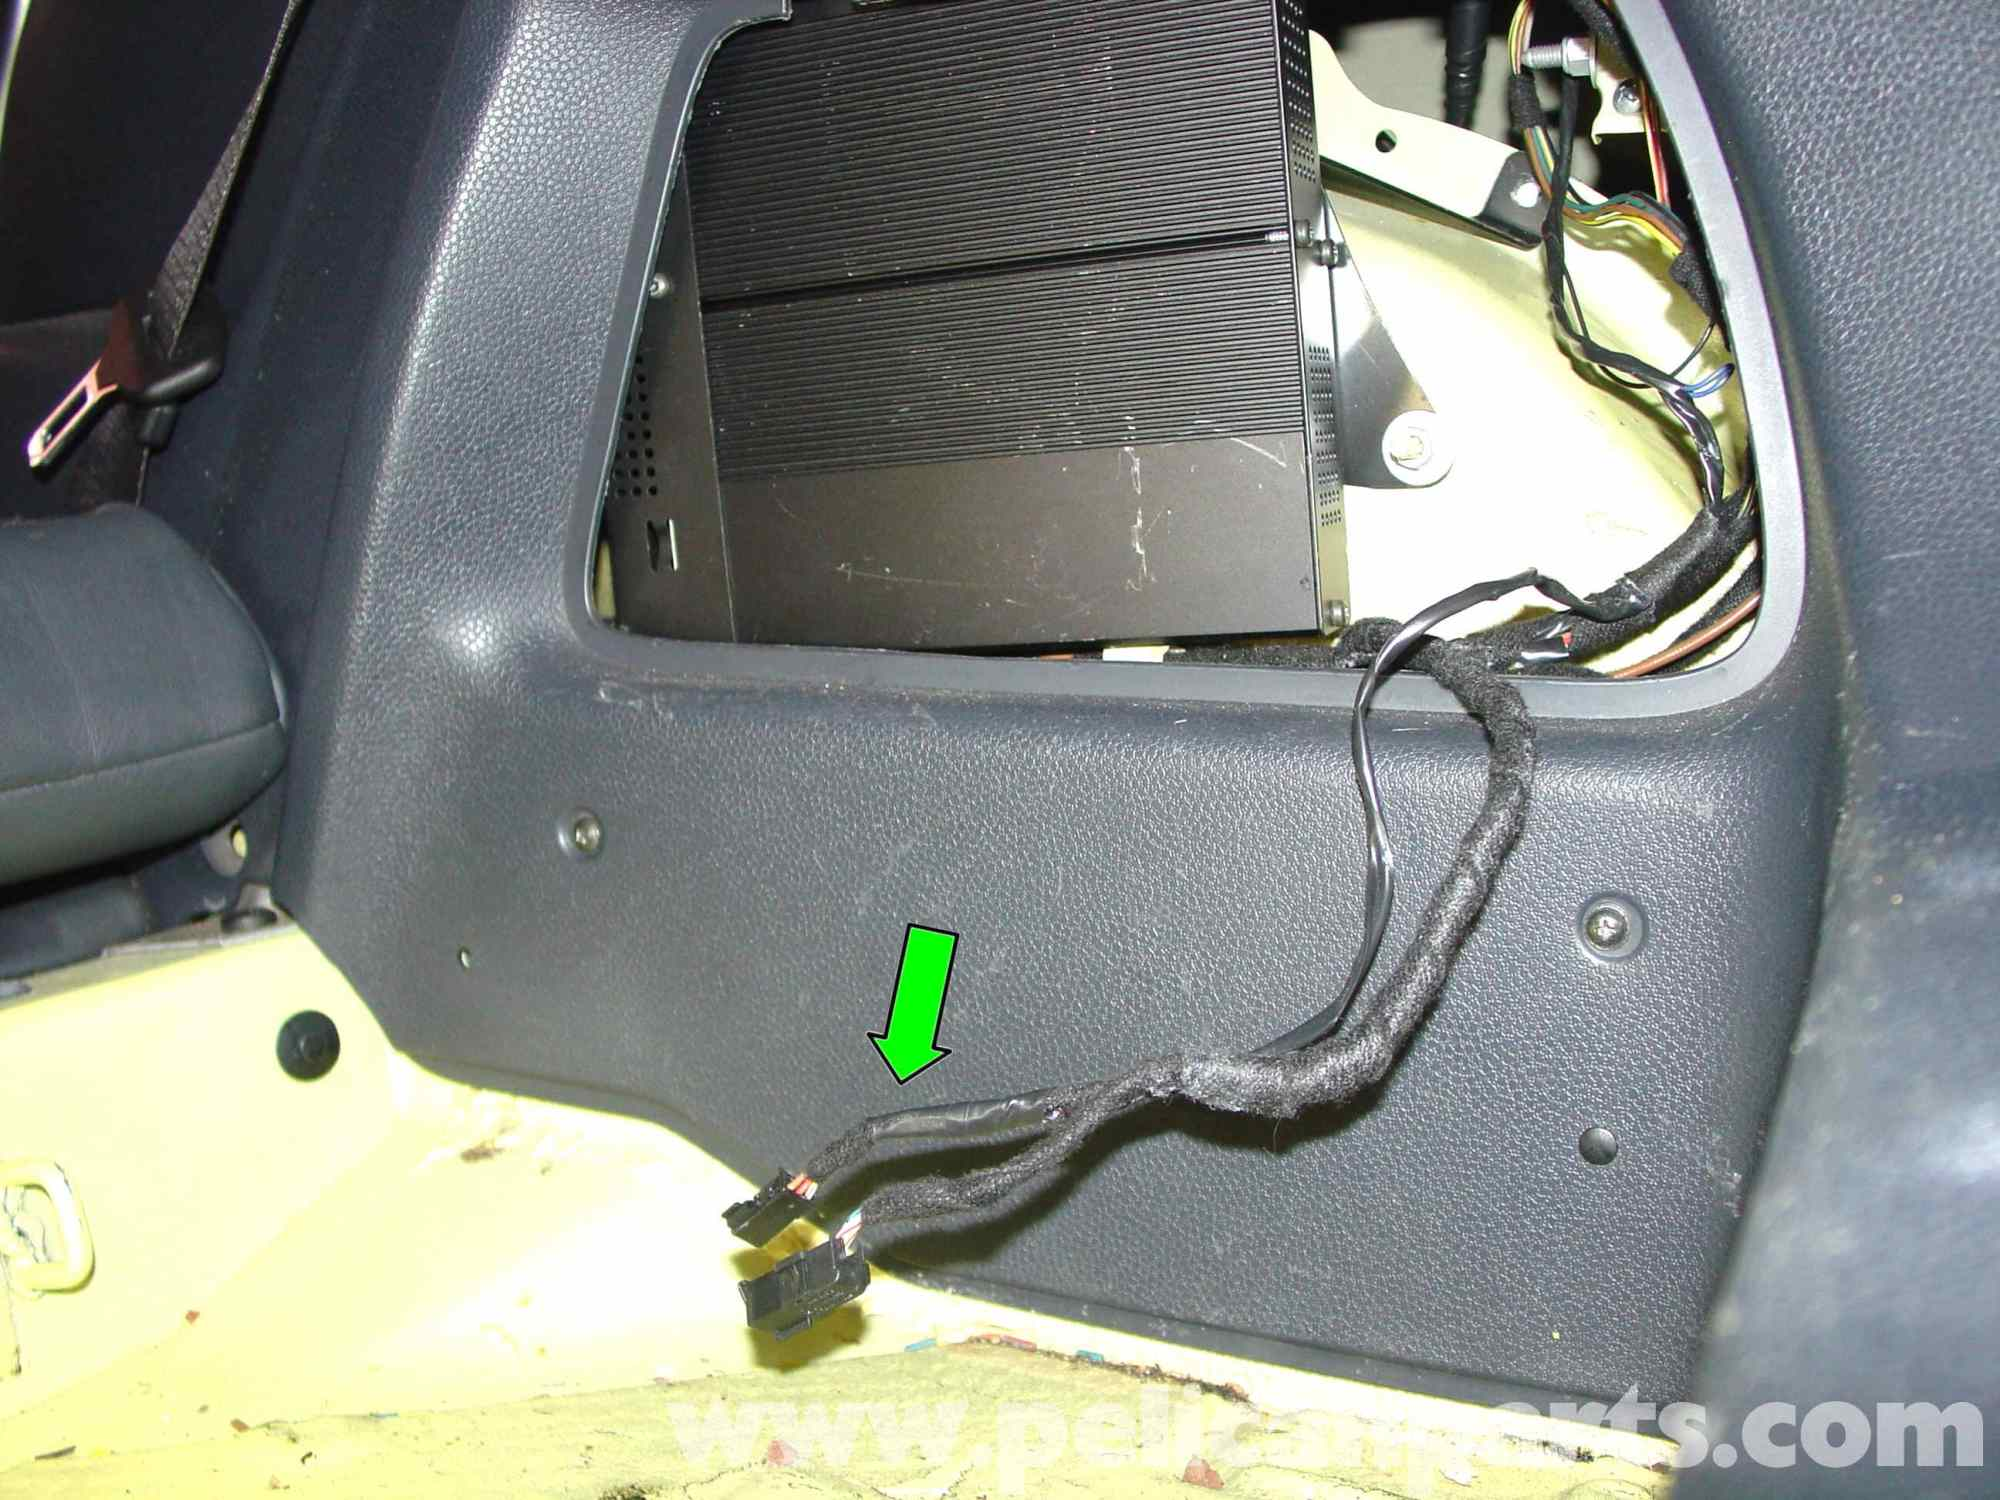 hight resolution of  radio wiring harness diagram mini cooper wiring harness routing large image extra large image